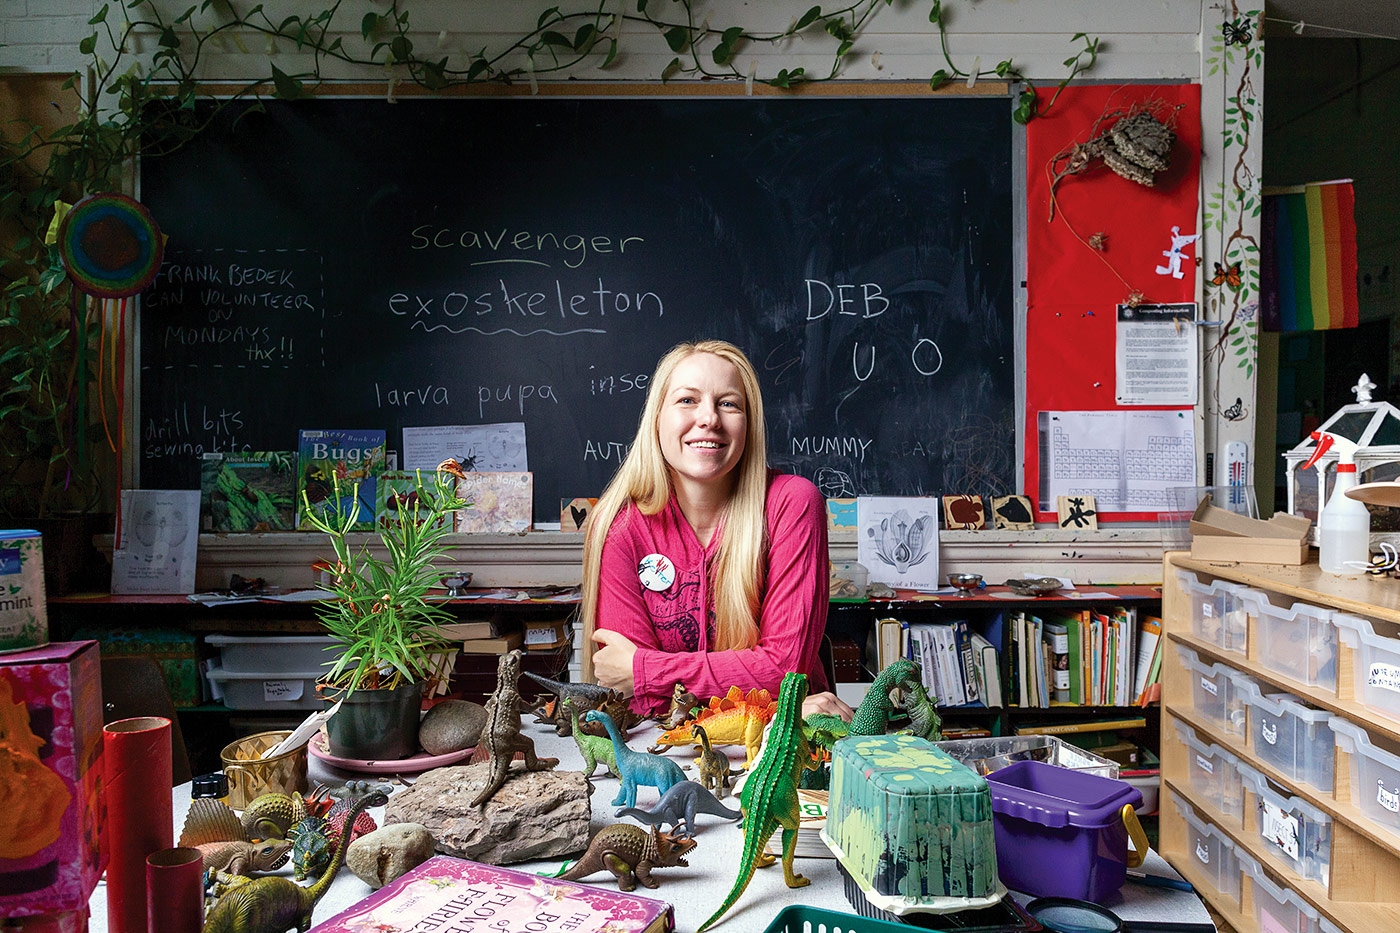 A woman in a pink pullover sits at a table in front of a blackboard in a classroom surrounded by books and toy dinosaurs